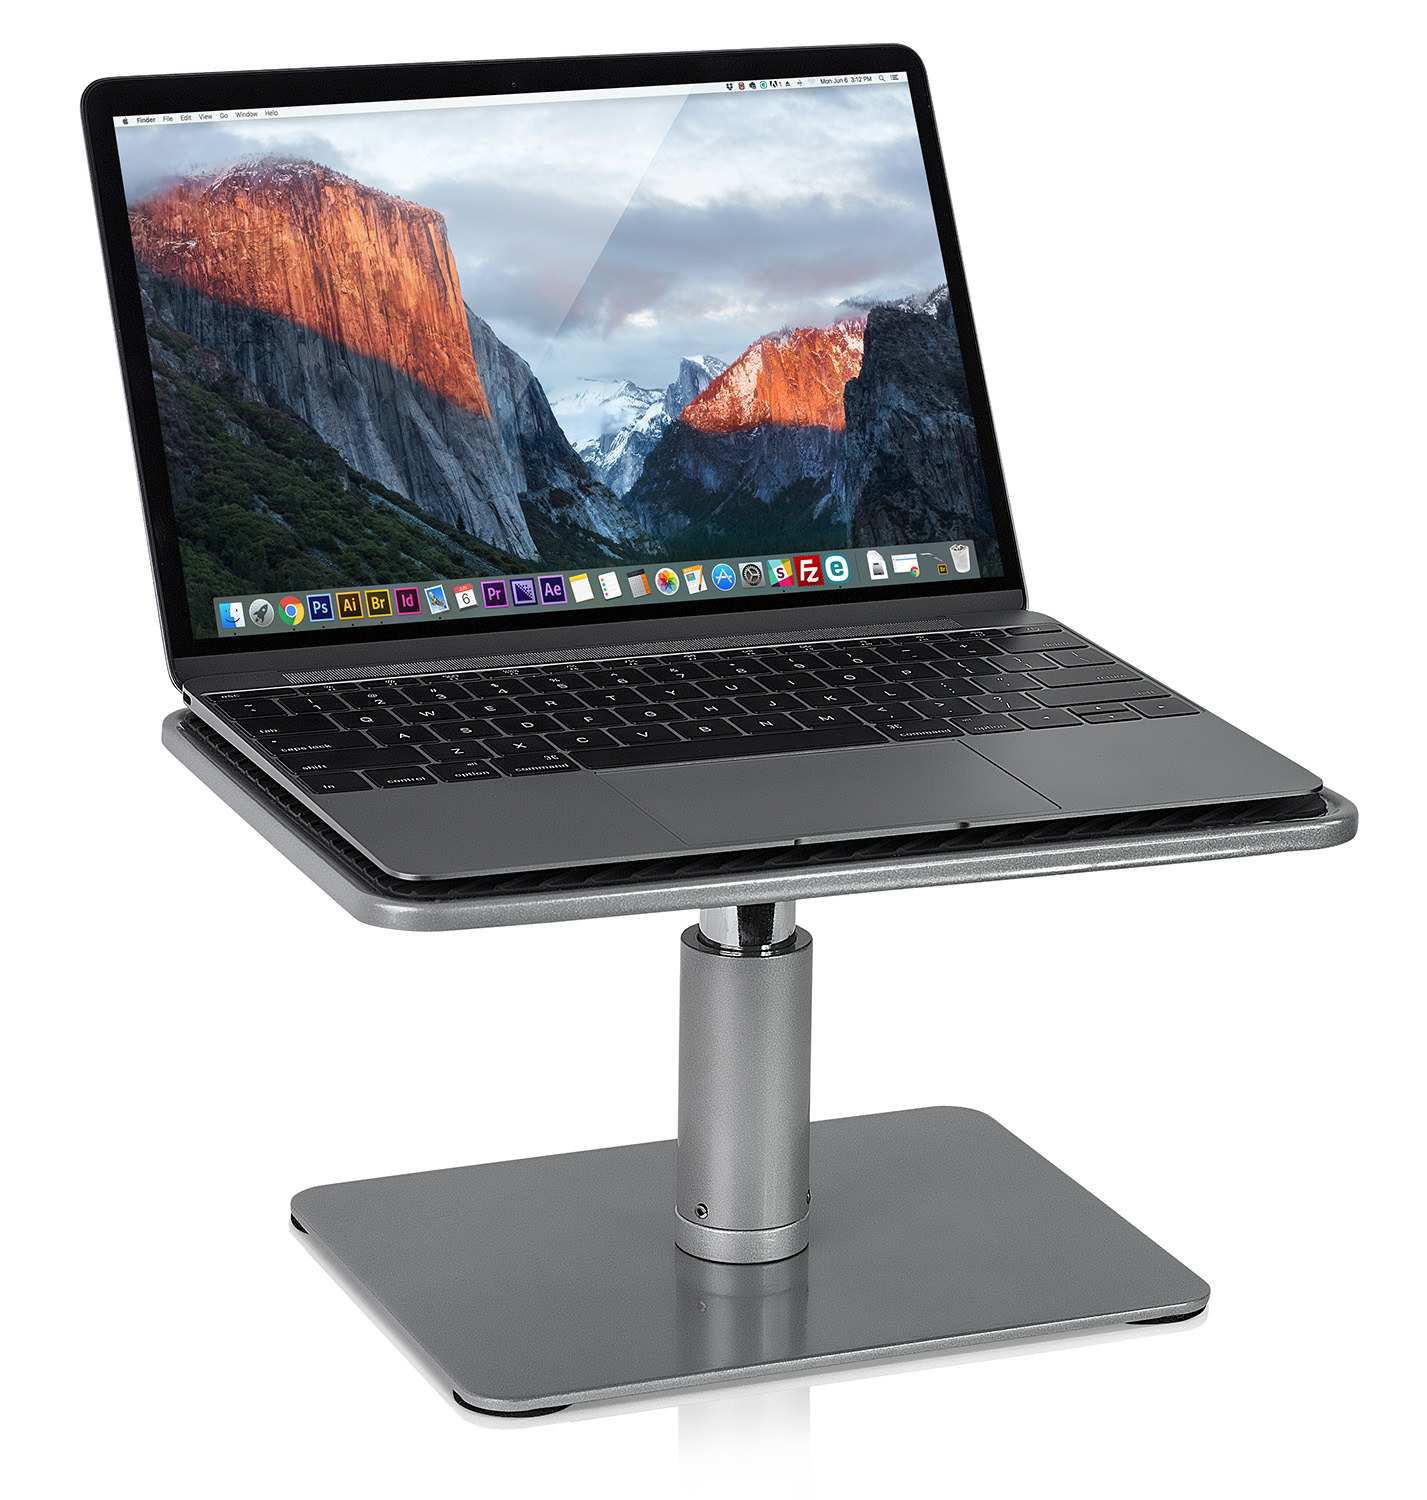 the laptop stand